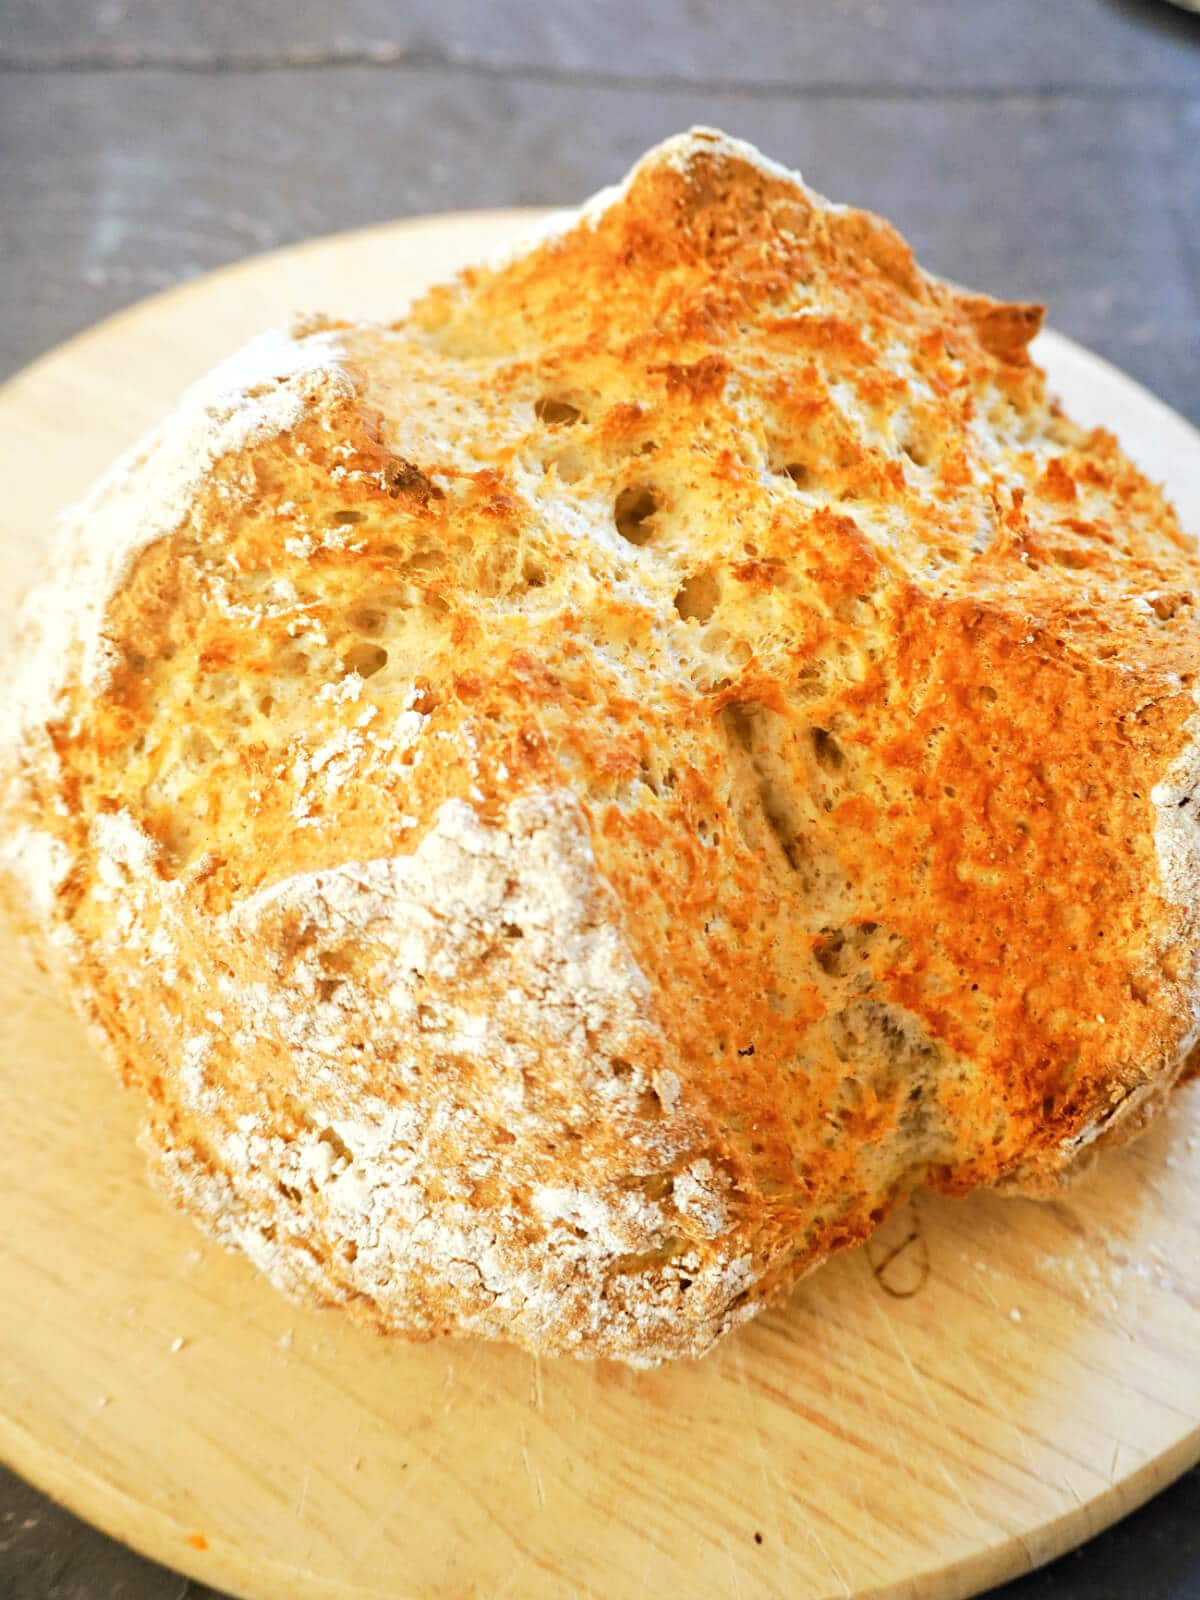 Close-up shot of a soda bread on a wooden board